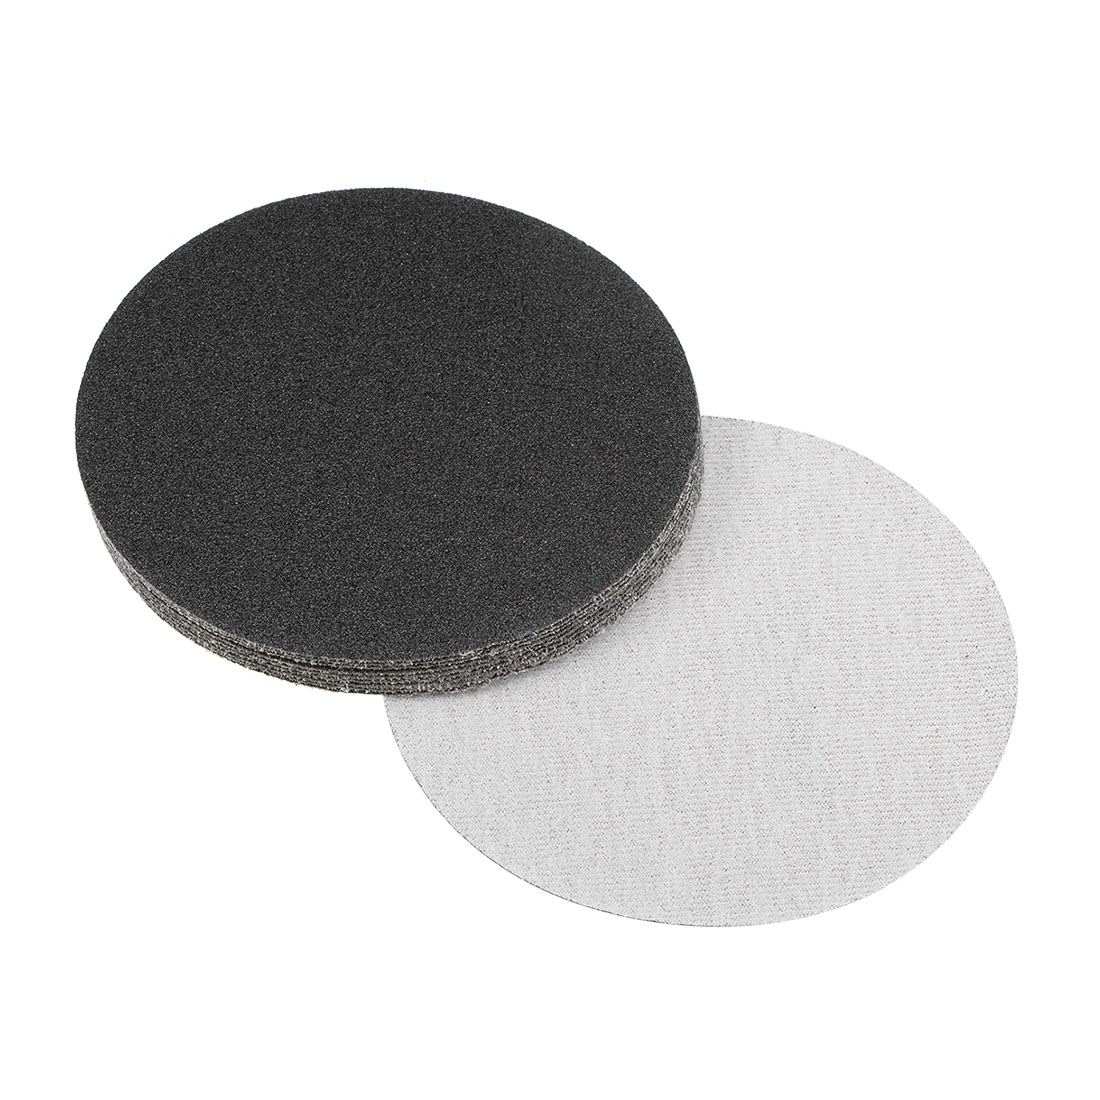 5 inch Wet Dry Discs 80 Grit Hook and Loop Sanding Disc Silicon Carbide 10pcs